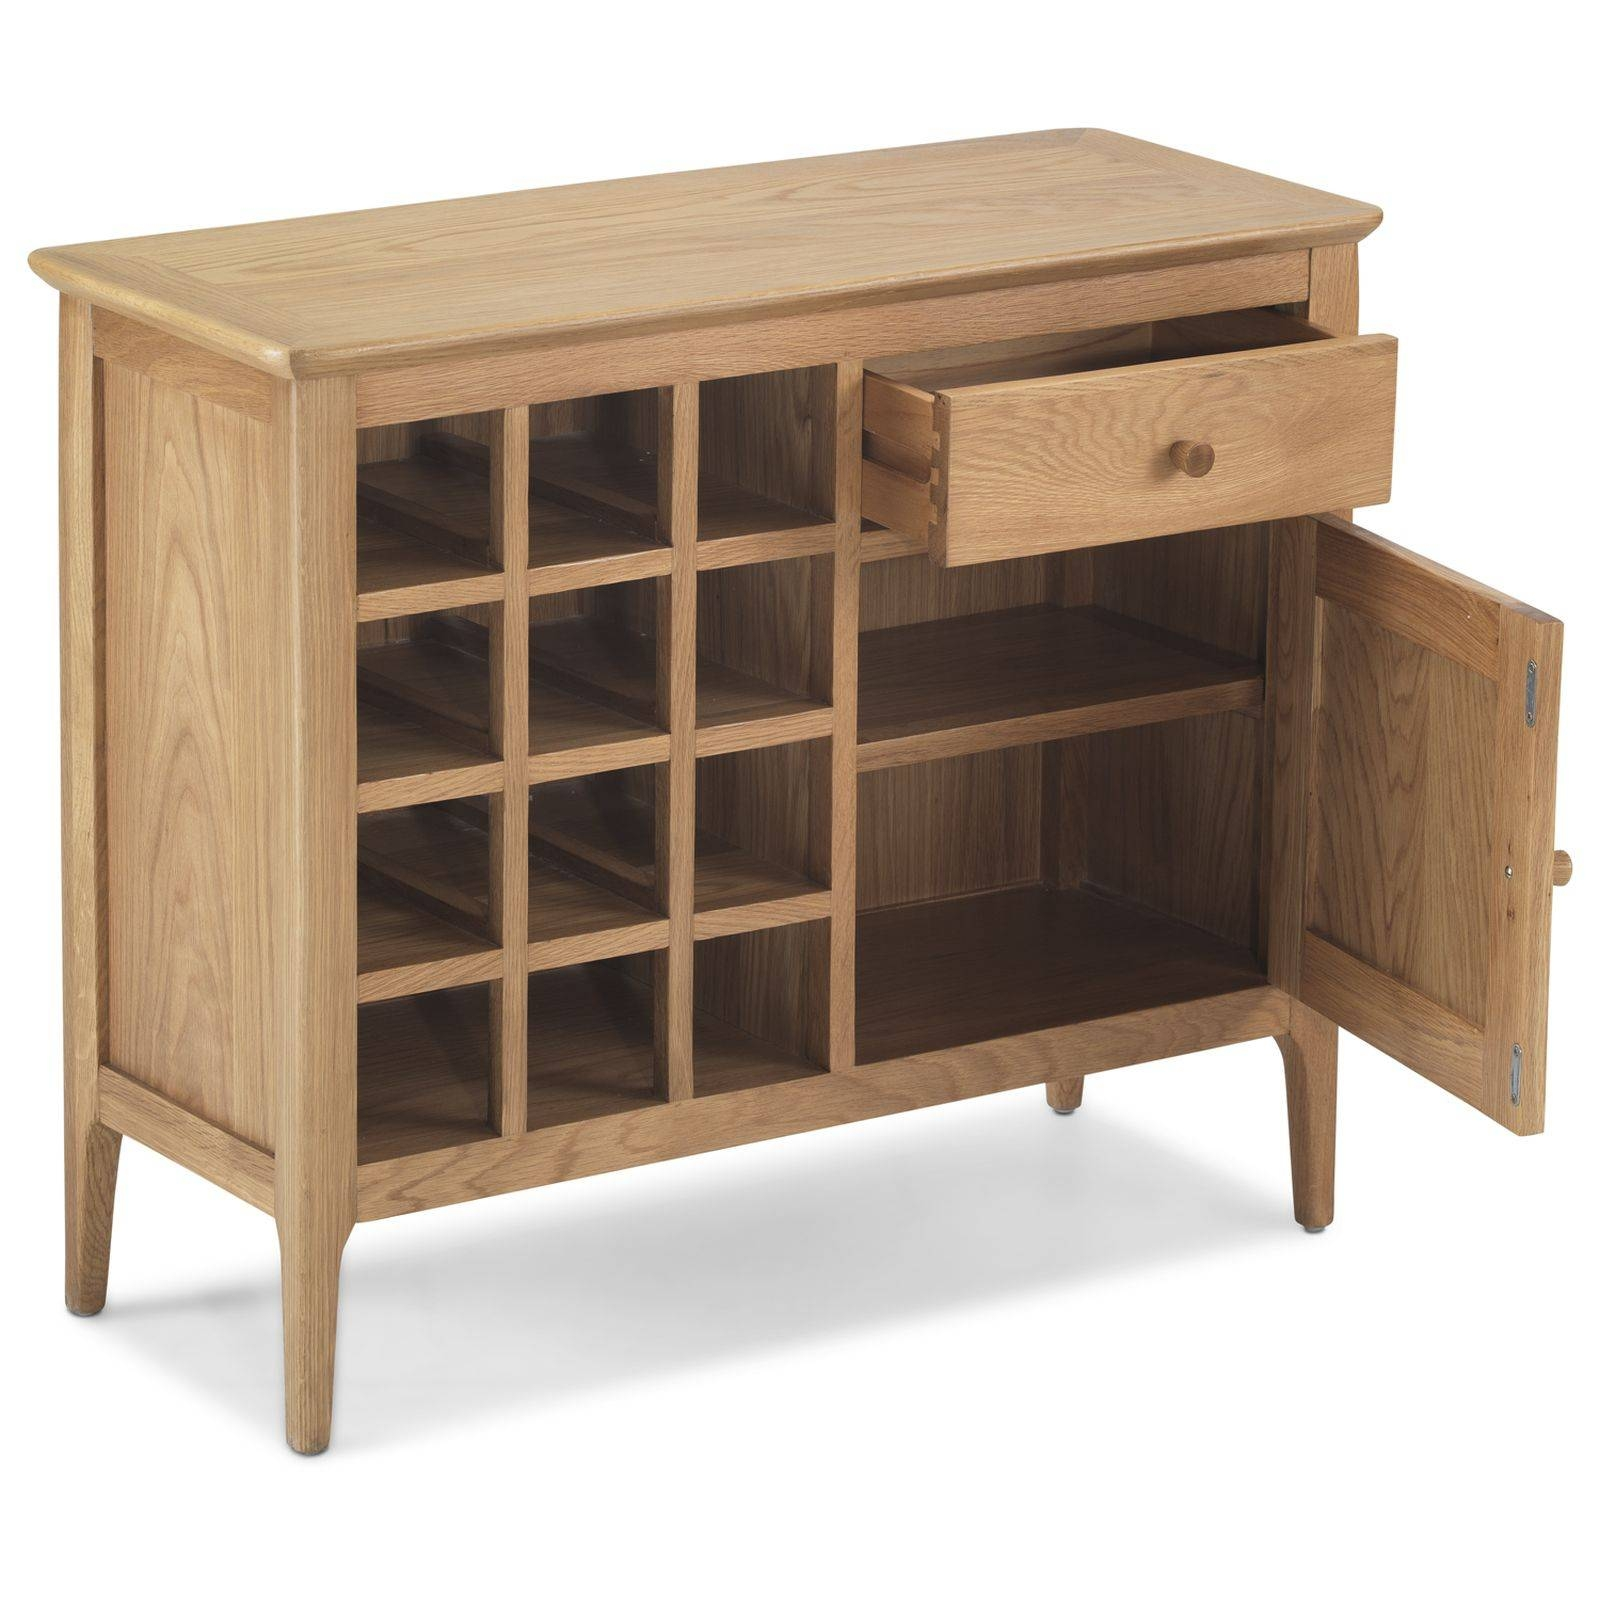 Telford Solid Oak Furniture Small Sideboard Wine Rack within Oak Sideboards With Wine Rack (Image 26 of 30)